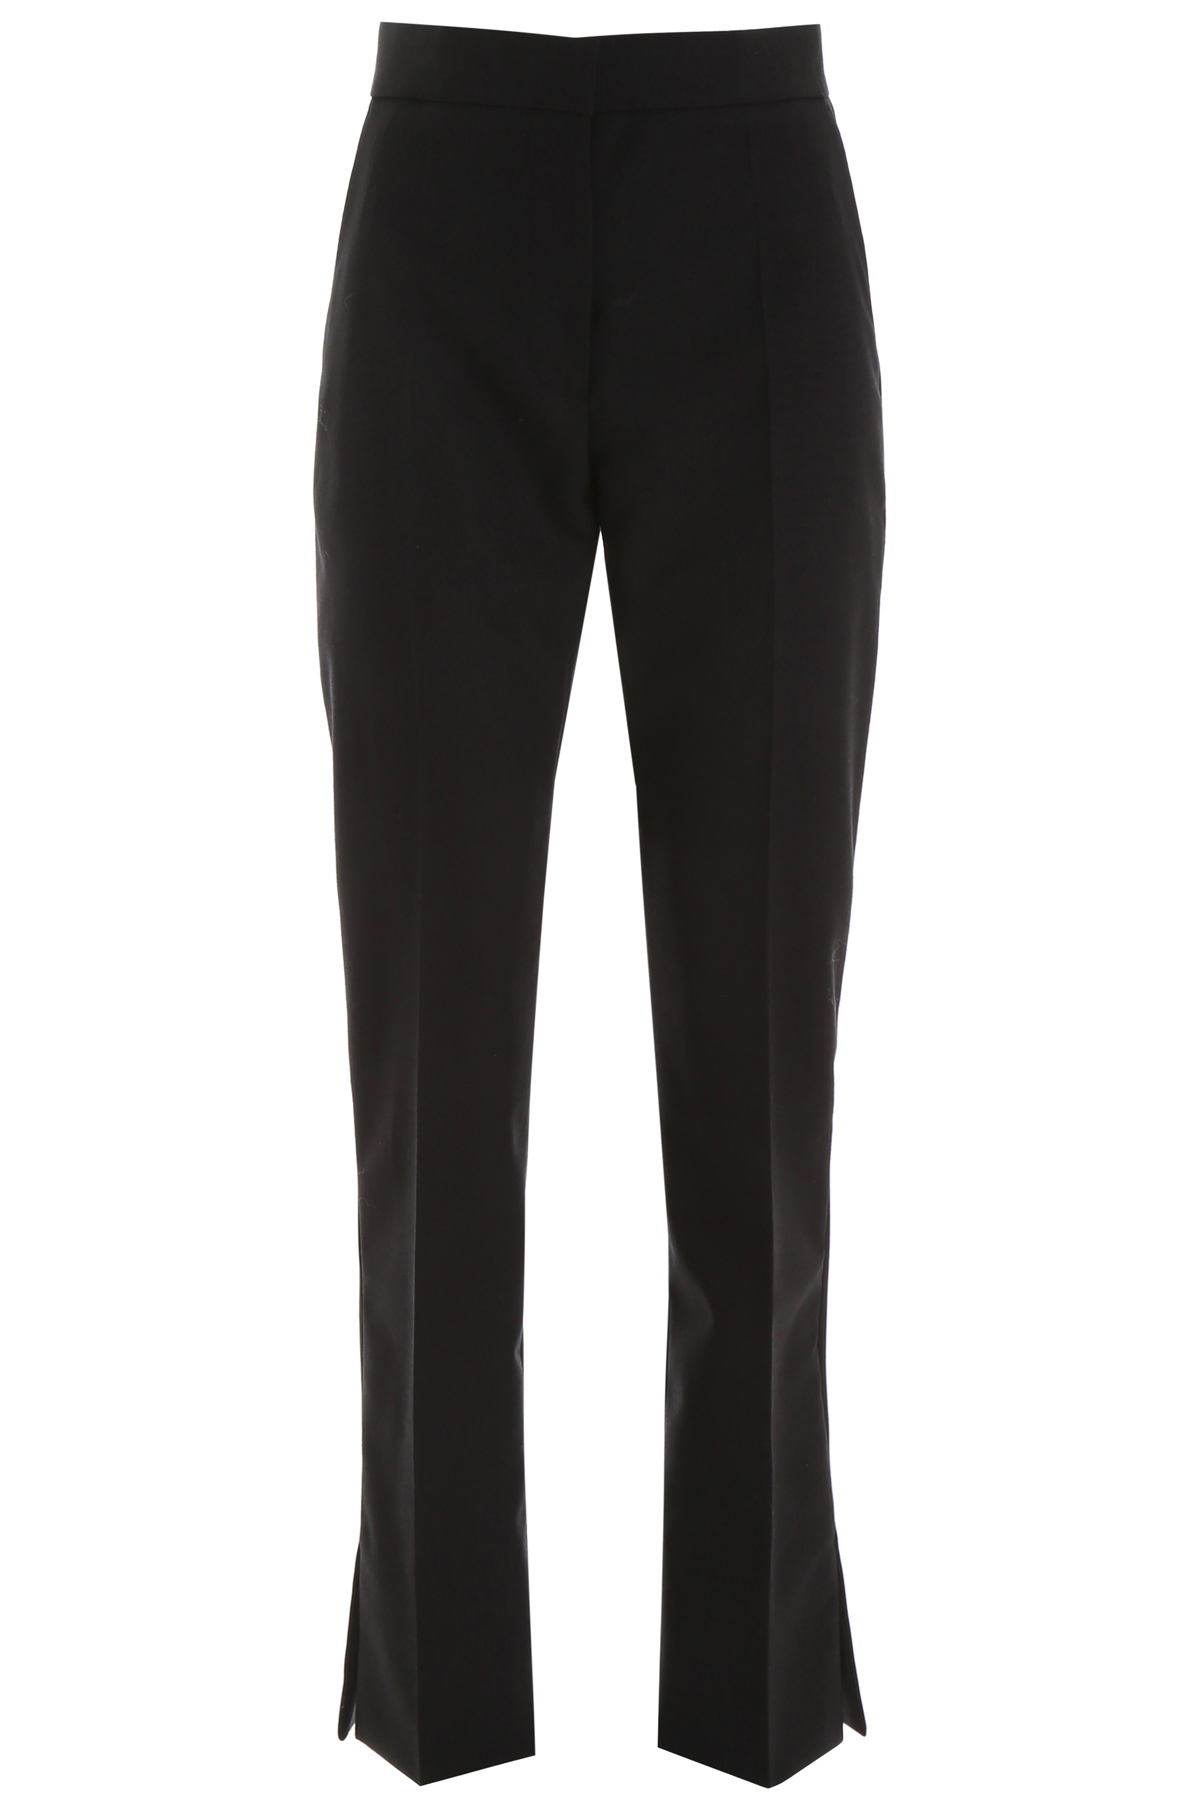 BURBERRY HARBOROUGH TROUSERS 8 Black Wool